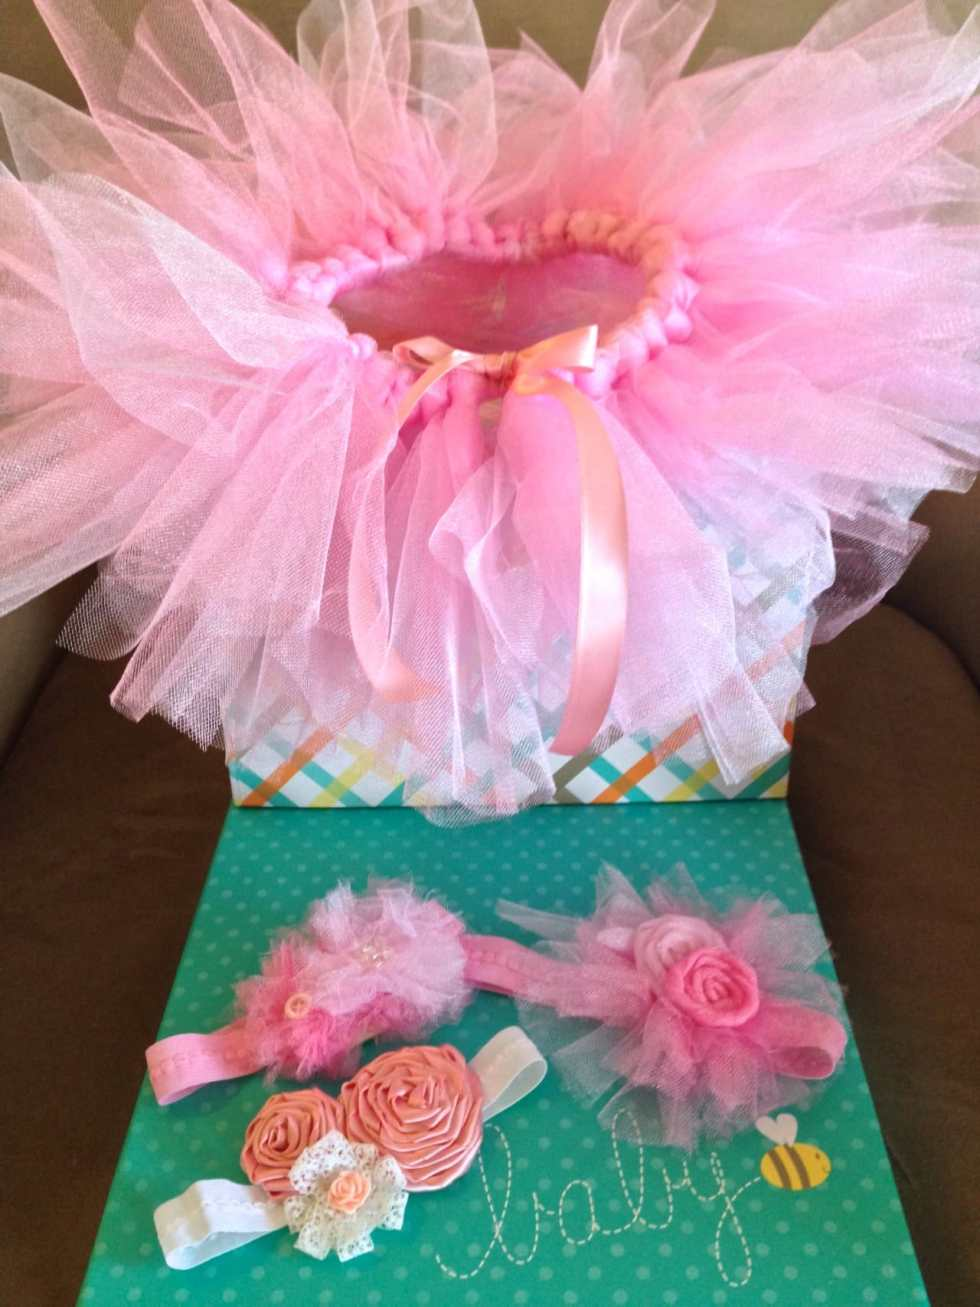 How to Make a No Sew Baby Tutu tutorial by Katie Crafts; http://www.katiecrafts.com